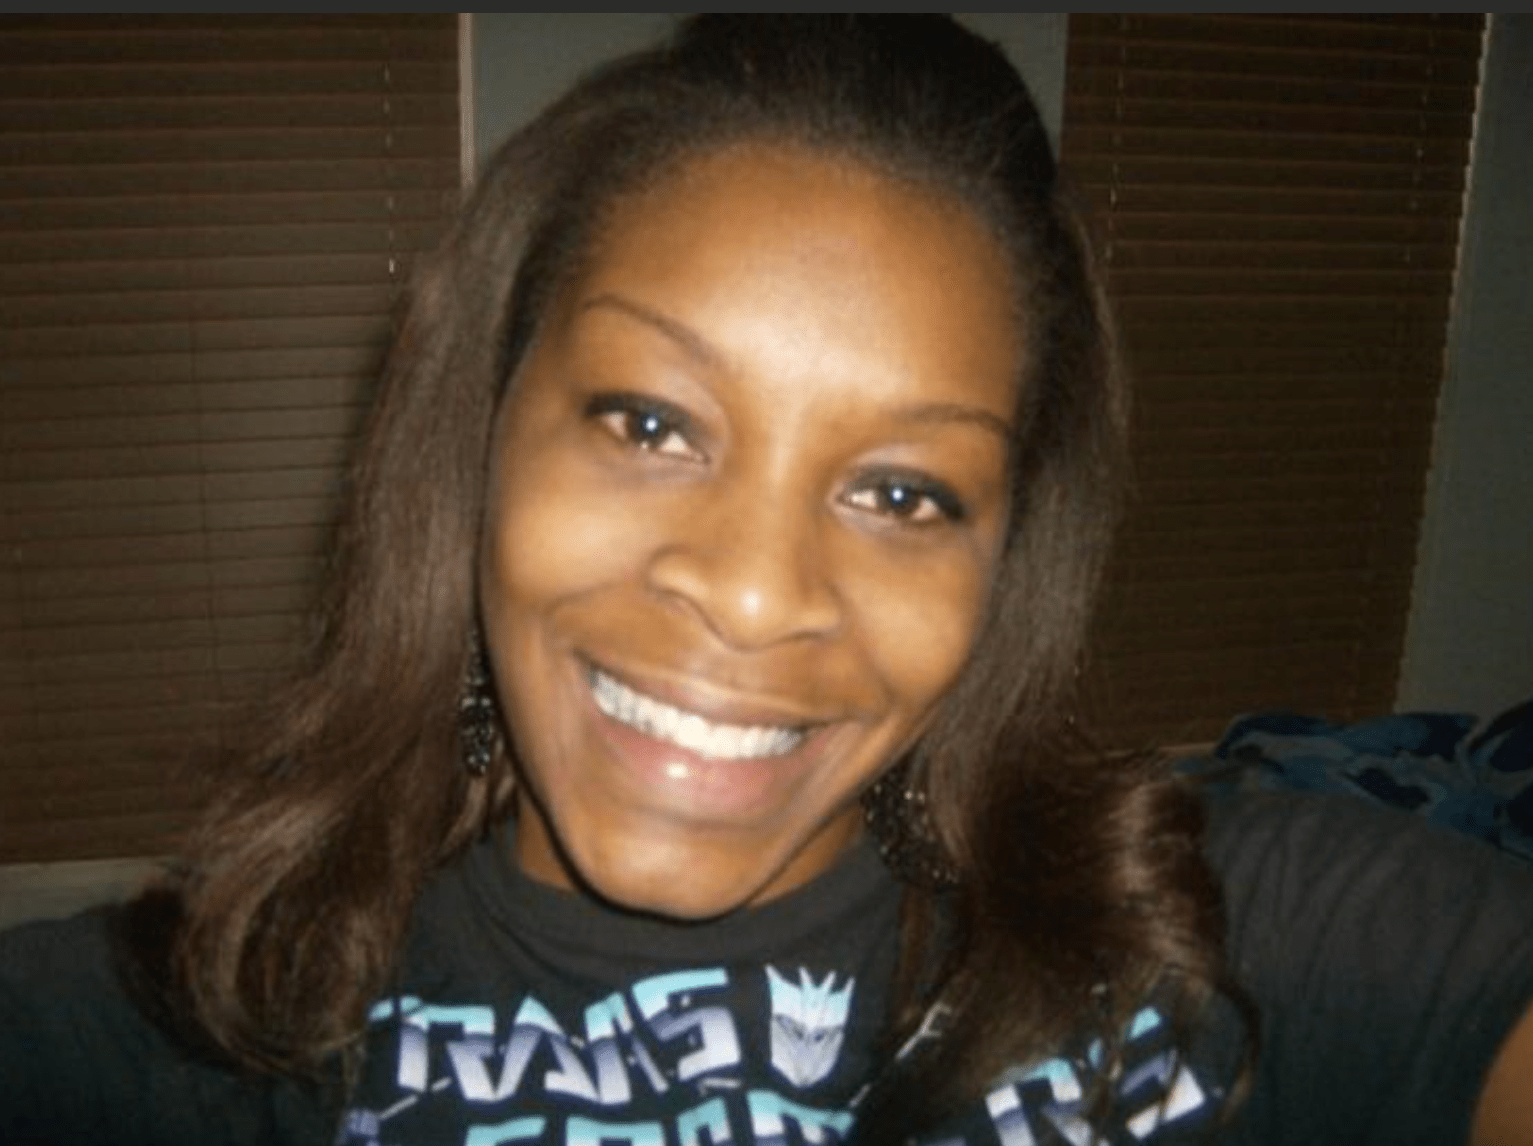 VIDEO: Sandra Bland's Own Cell Phone Recording of Her 2015 Texas Traffic Stop Surfaces